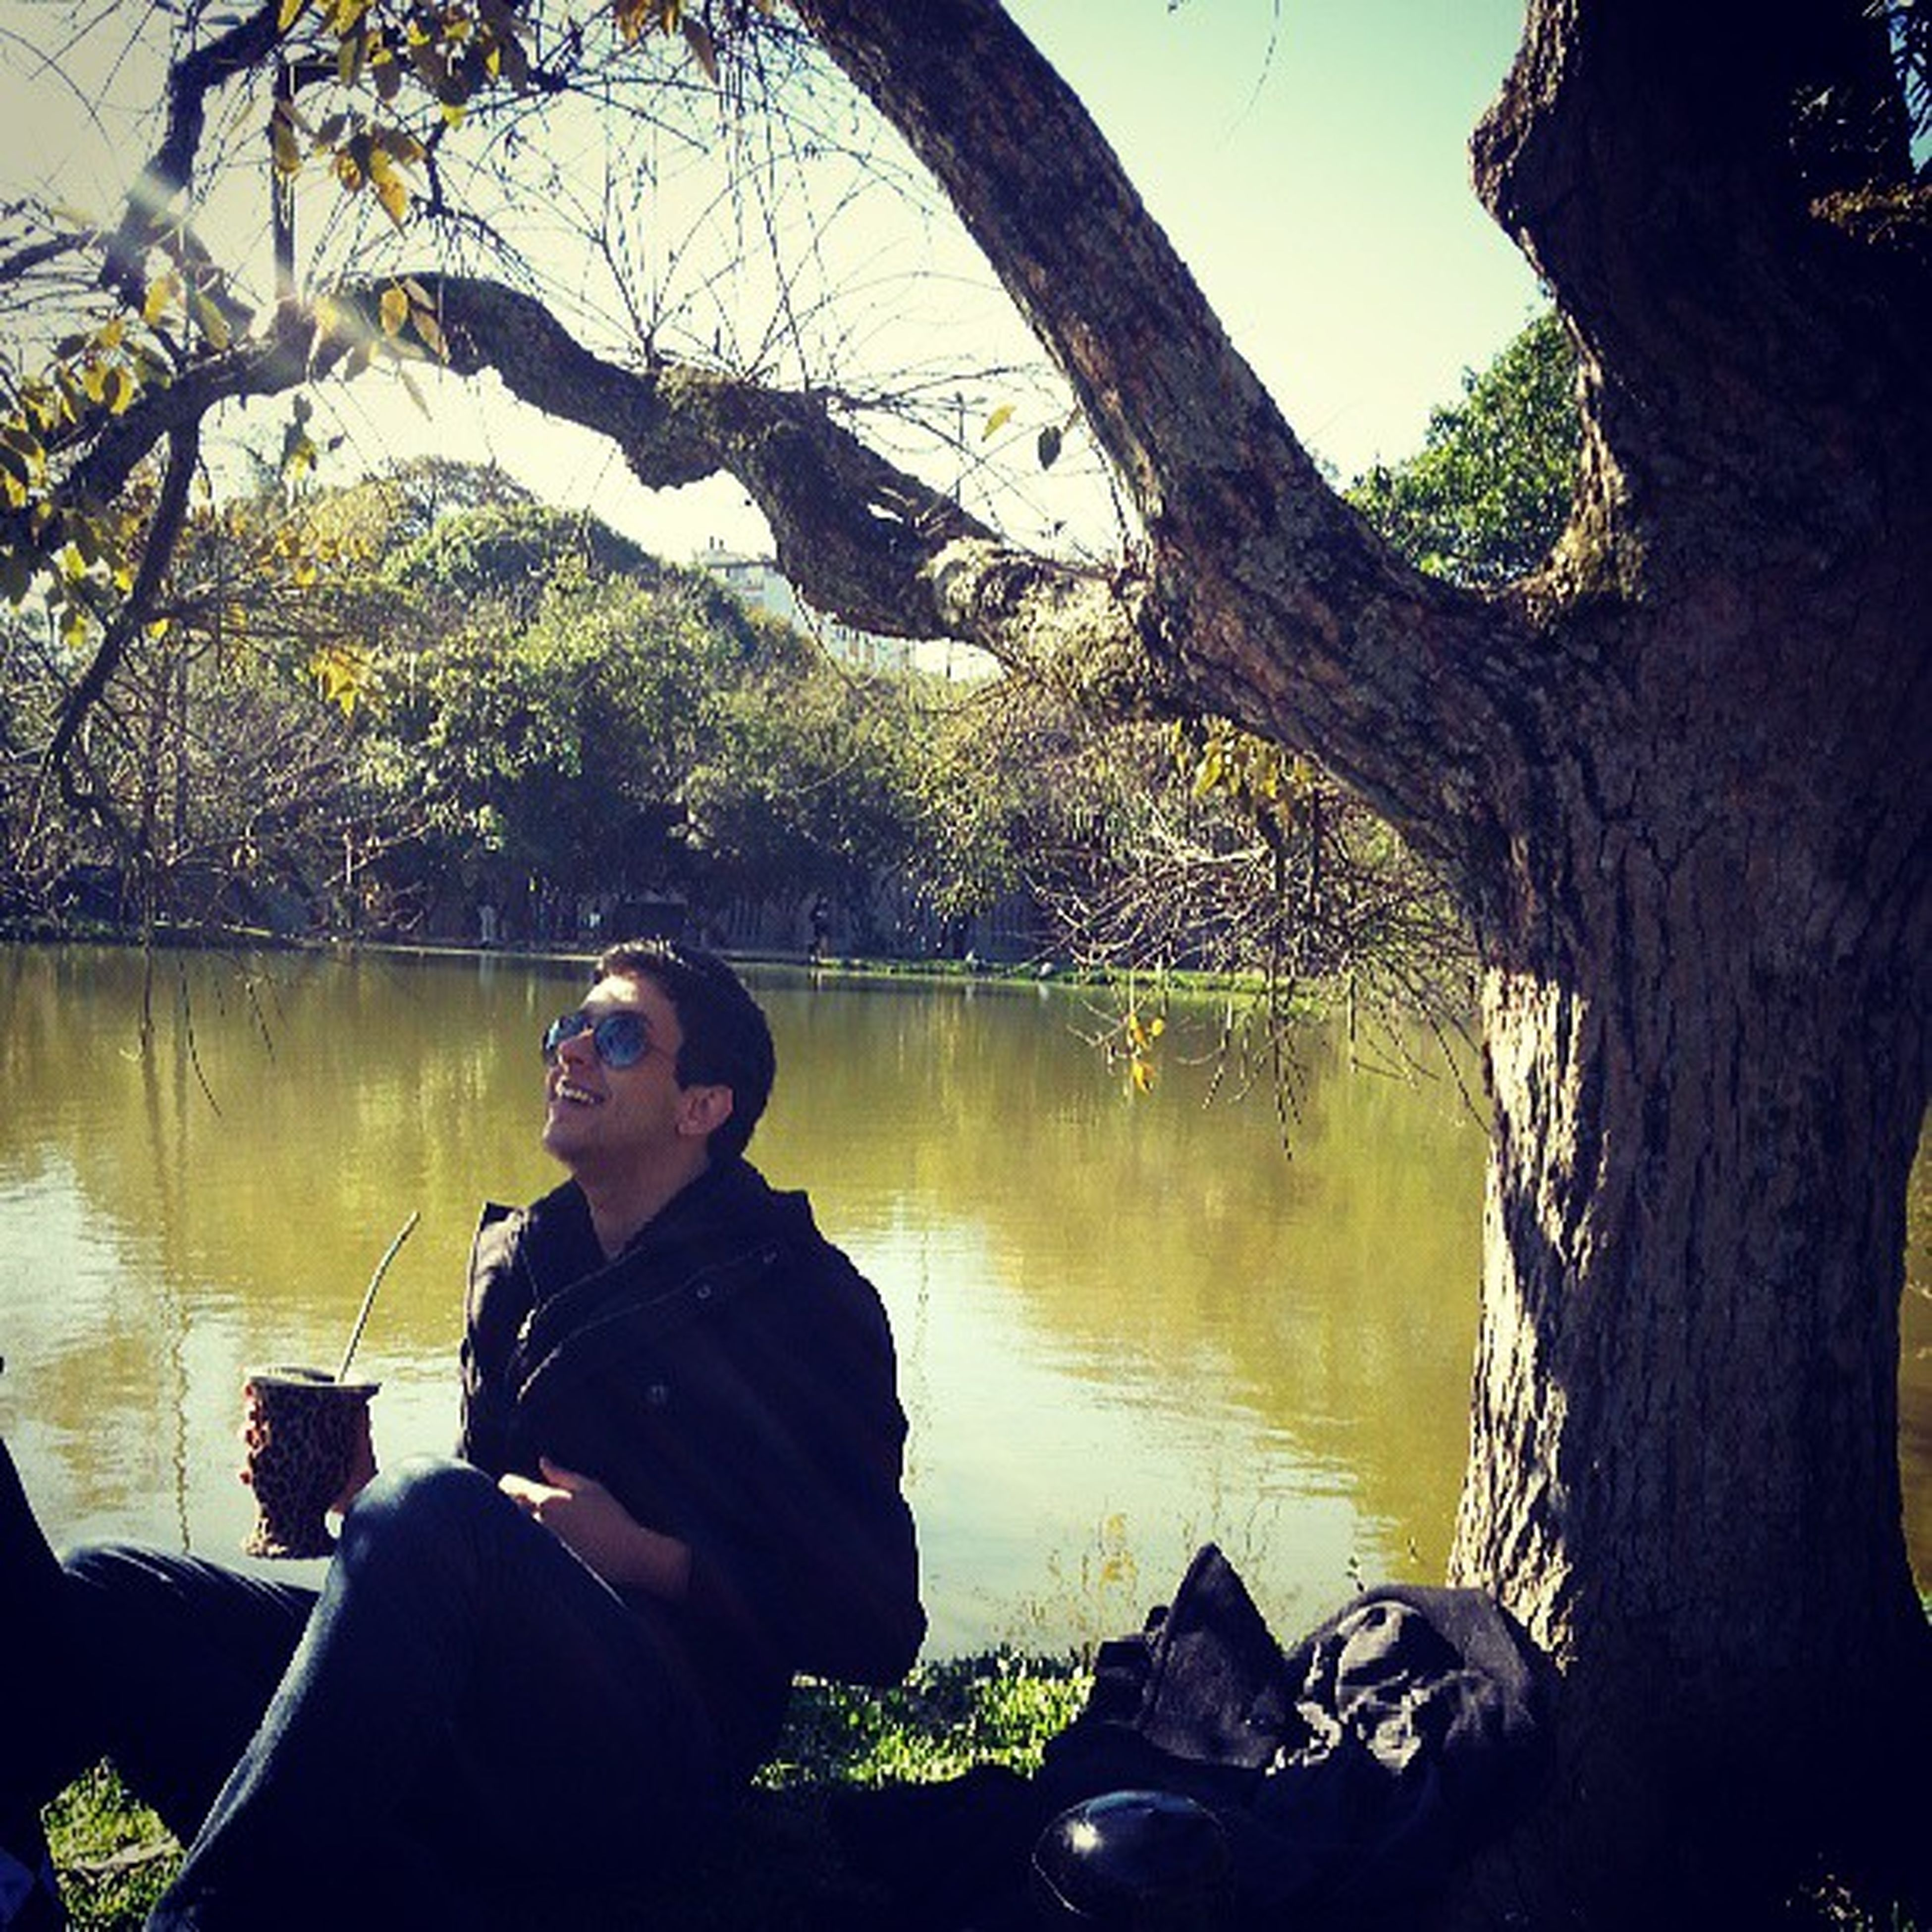 lifestyles, tree, water, leisure activity, lake, young adult, casual clothing, person, sitting, reflection, young men, standing, nature, waist up, three quarter length, looking at camera, tranquility